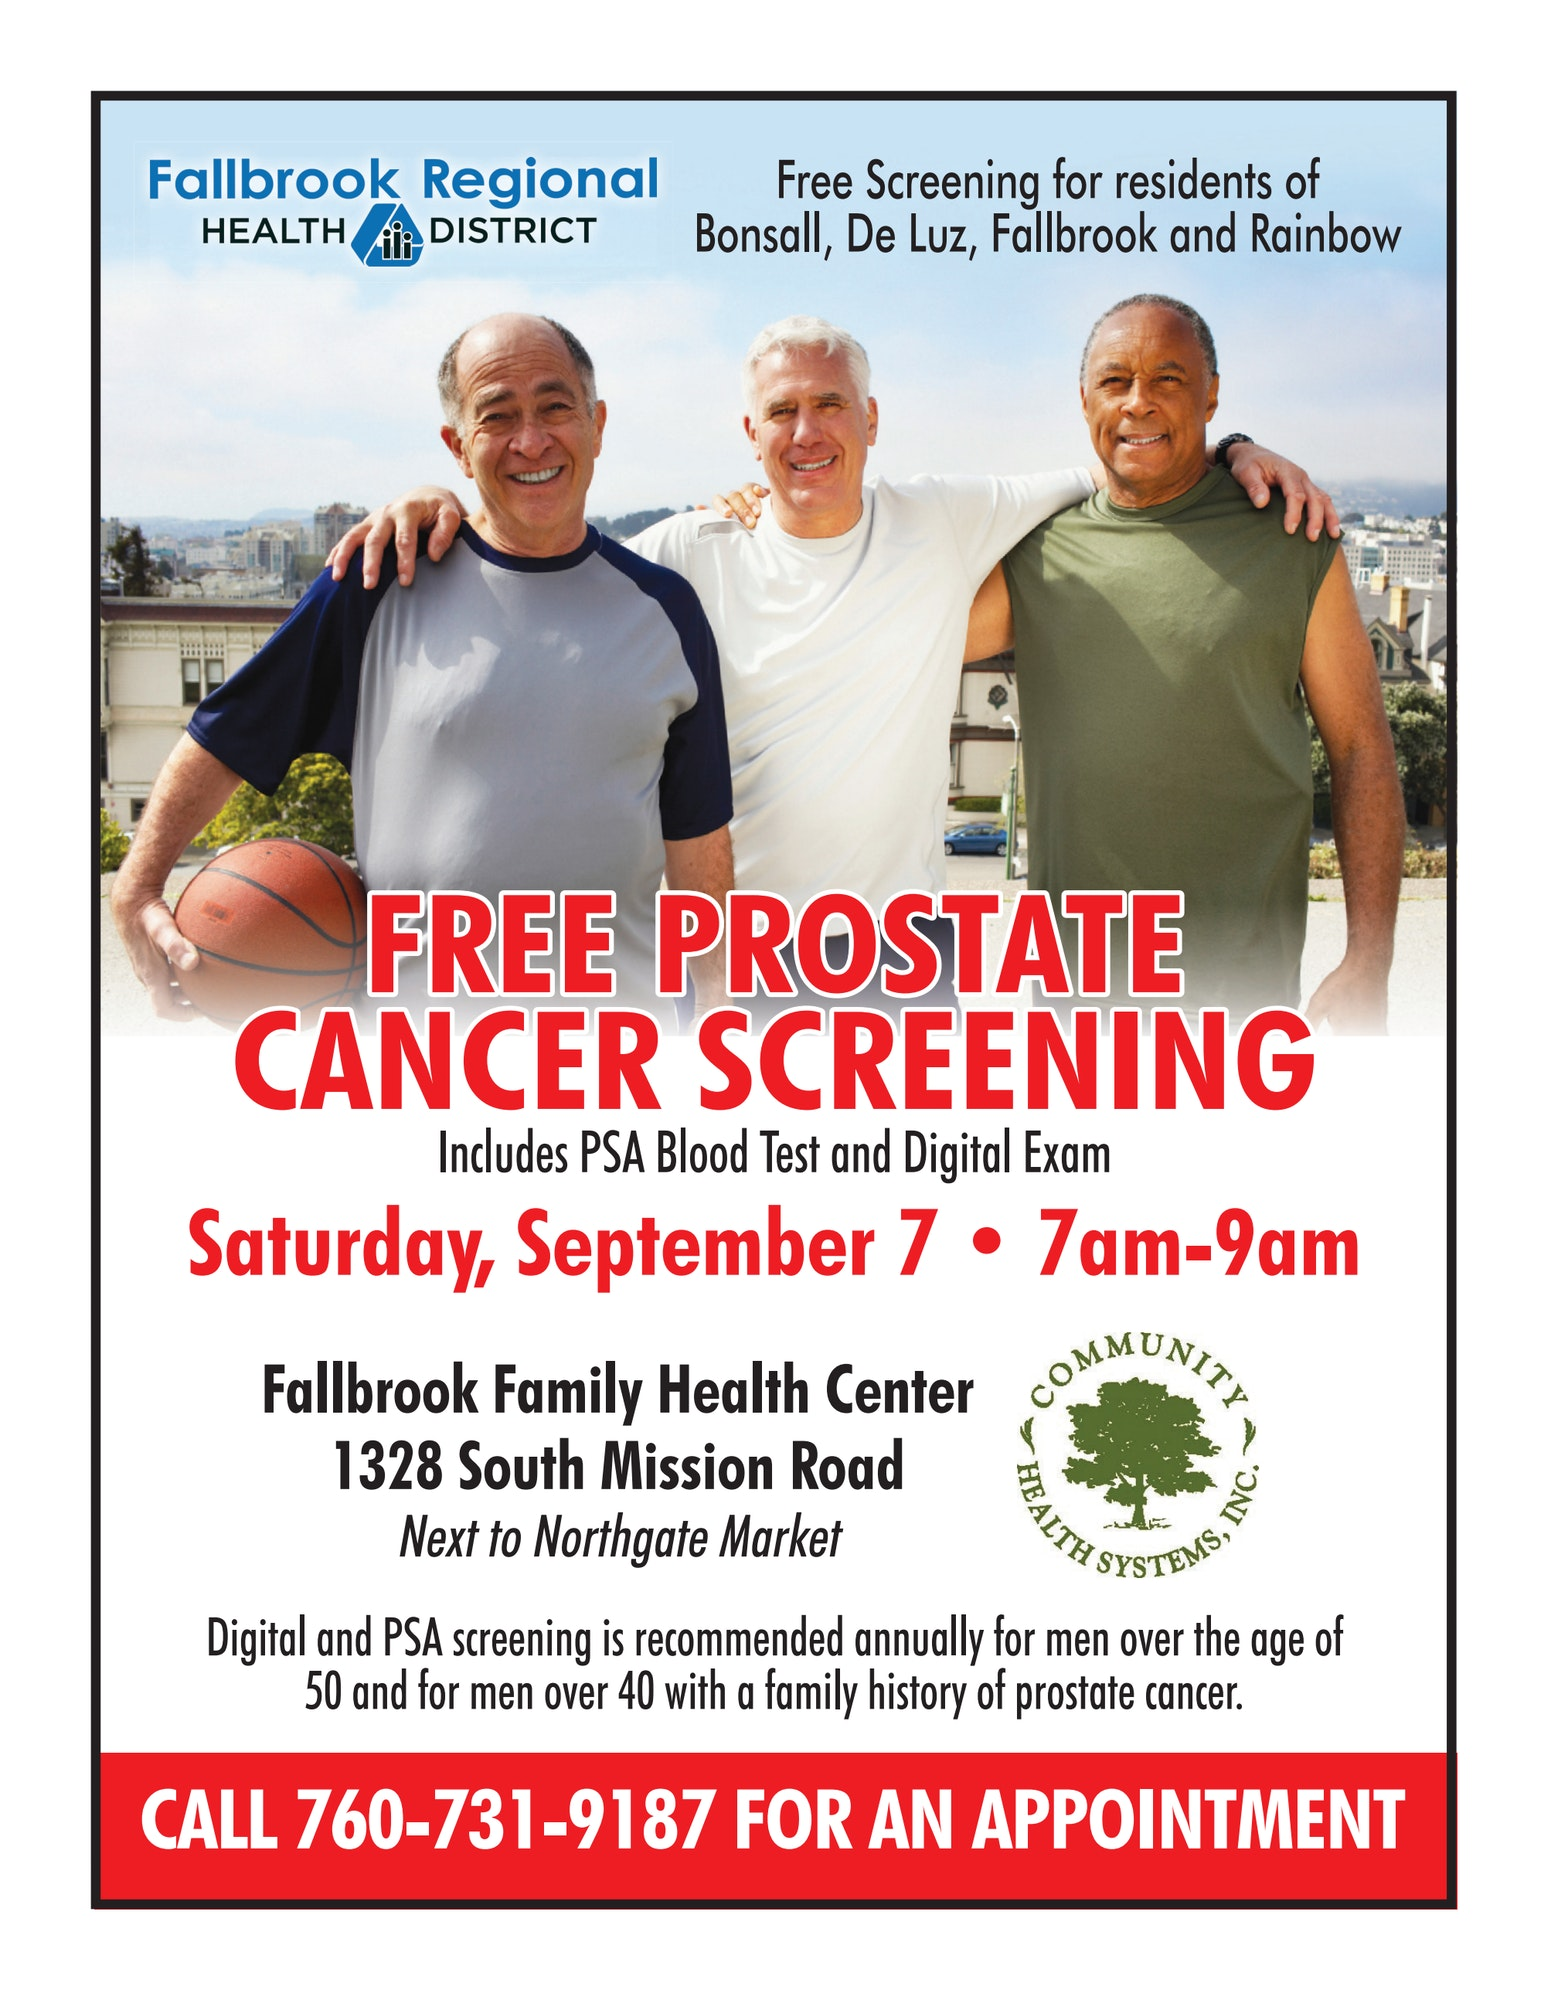 3 Men and info about screening